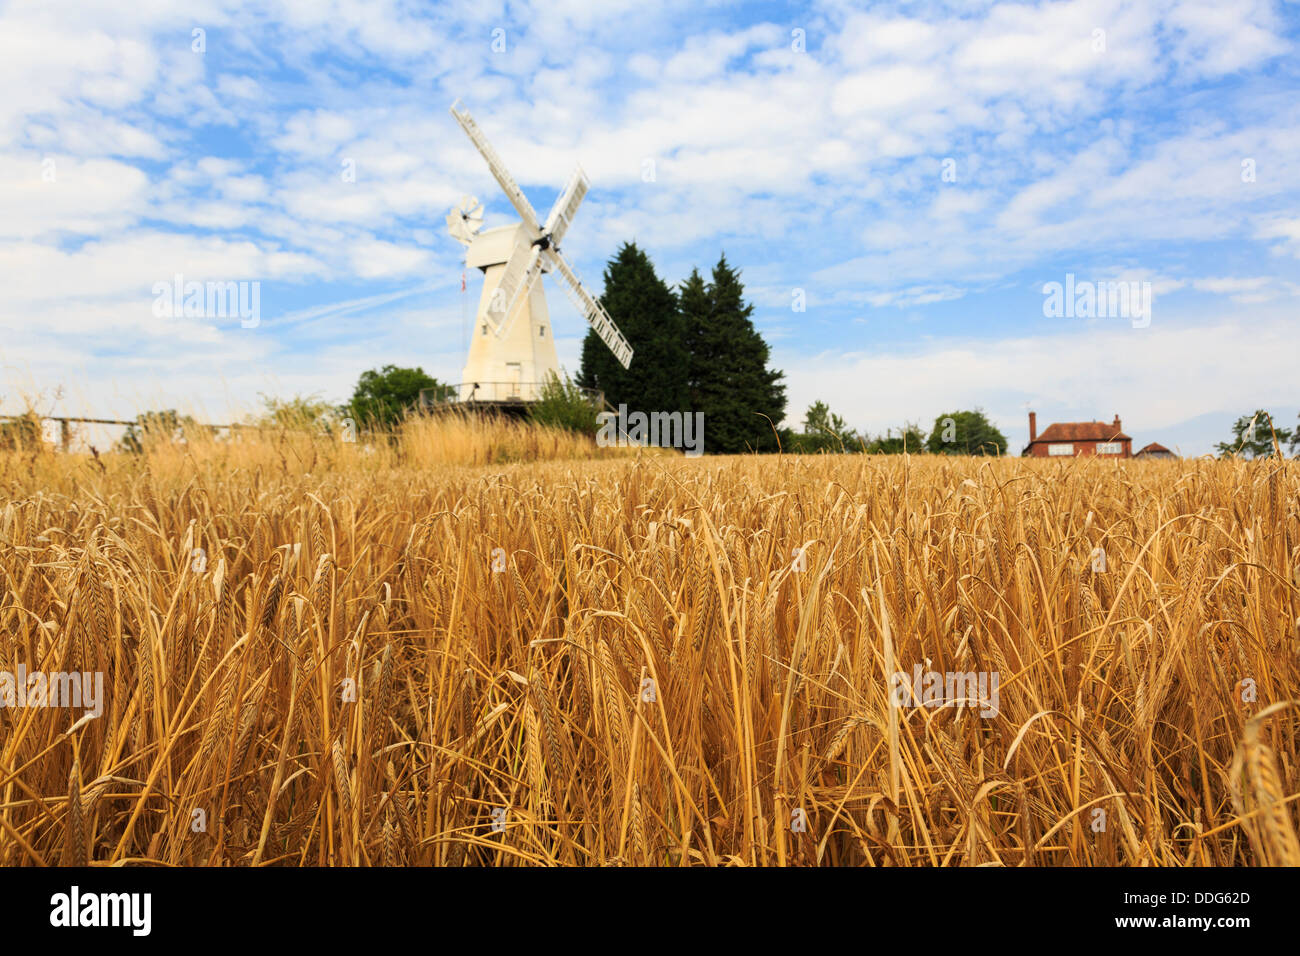 19C Kentish smock mill white wooden windmill beyond a field of ripe arable Barley crop ready for harvest in late - Stock Image